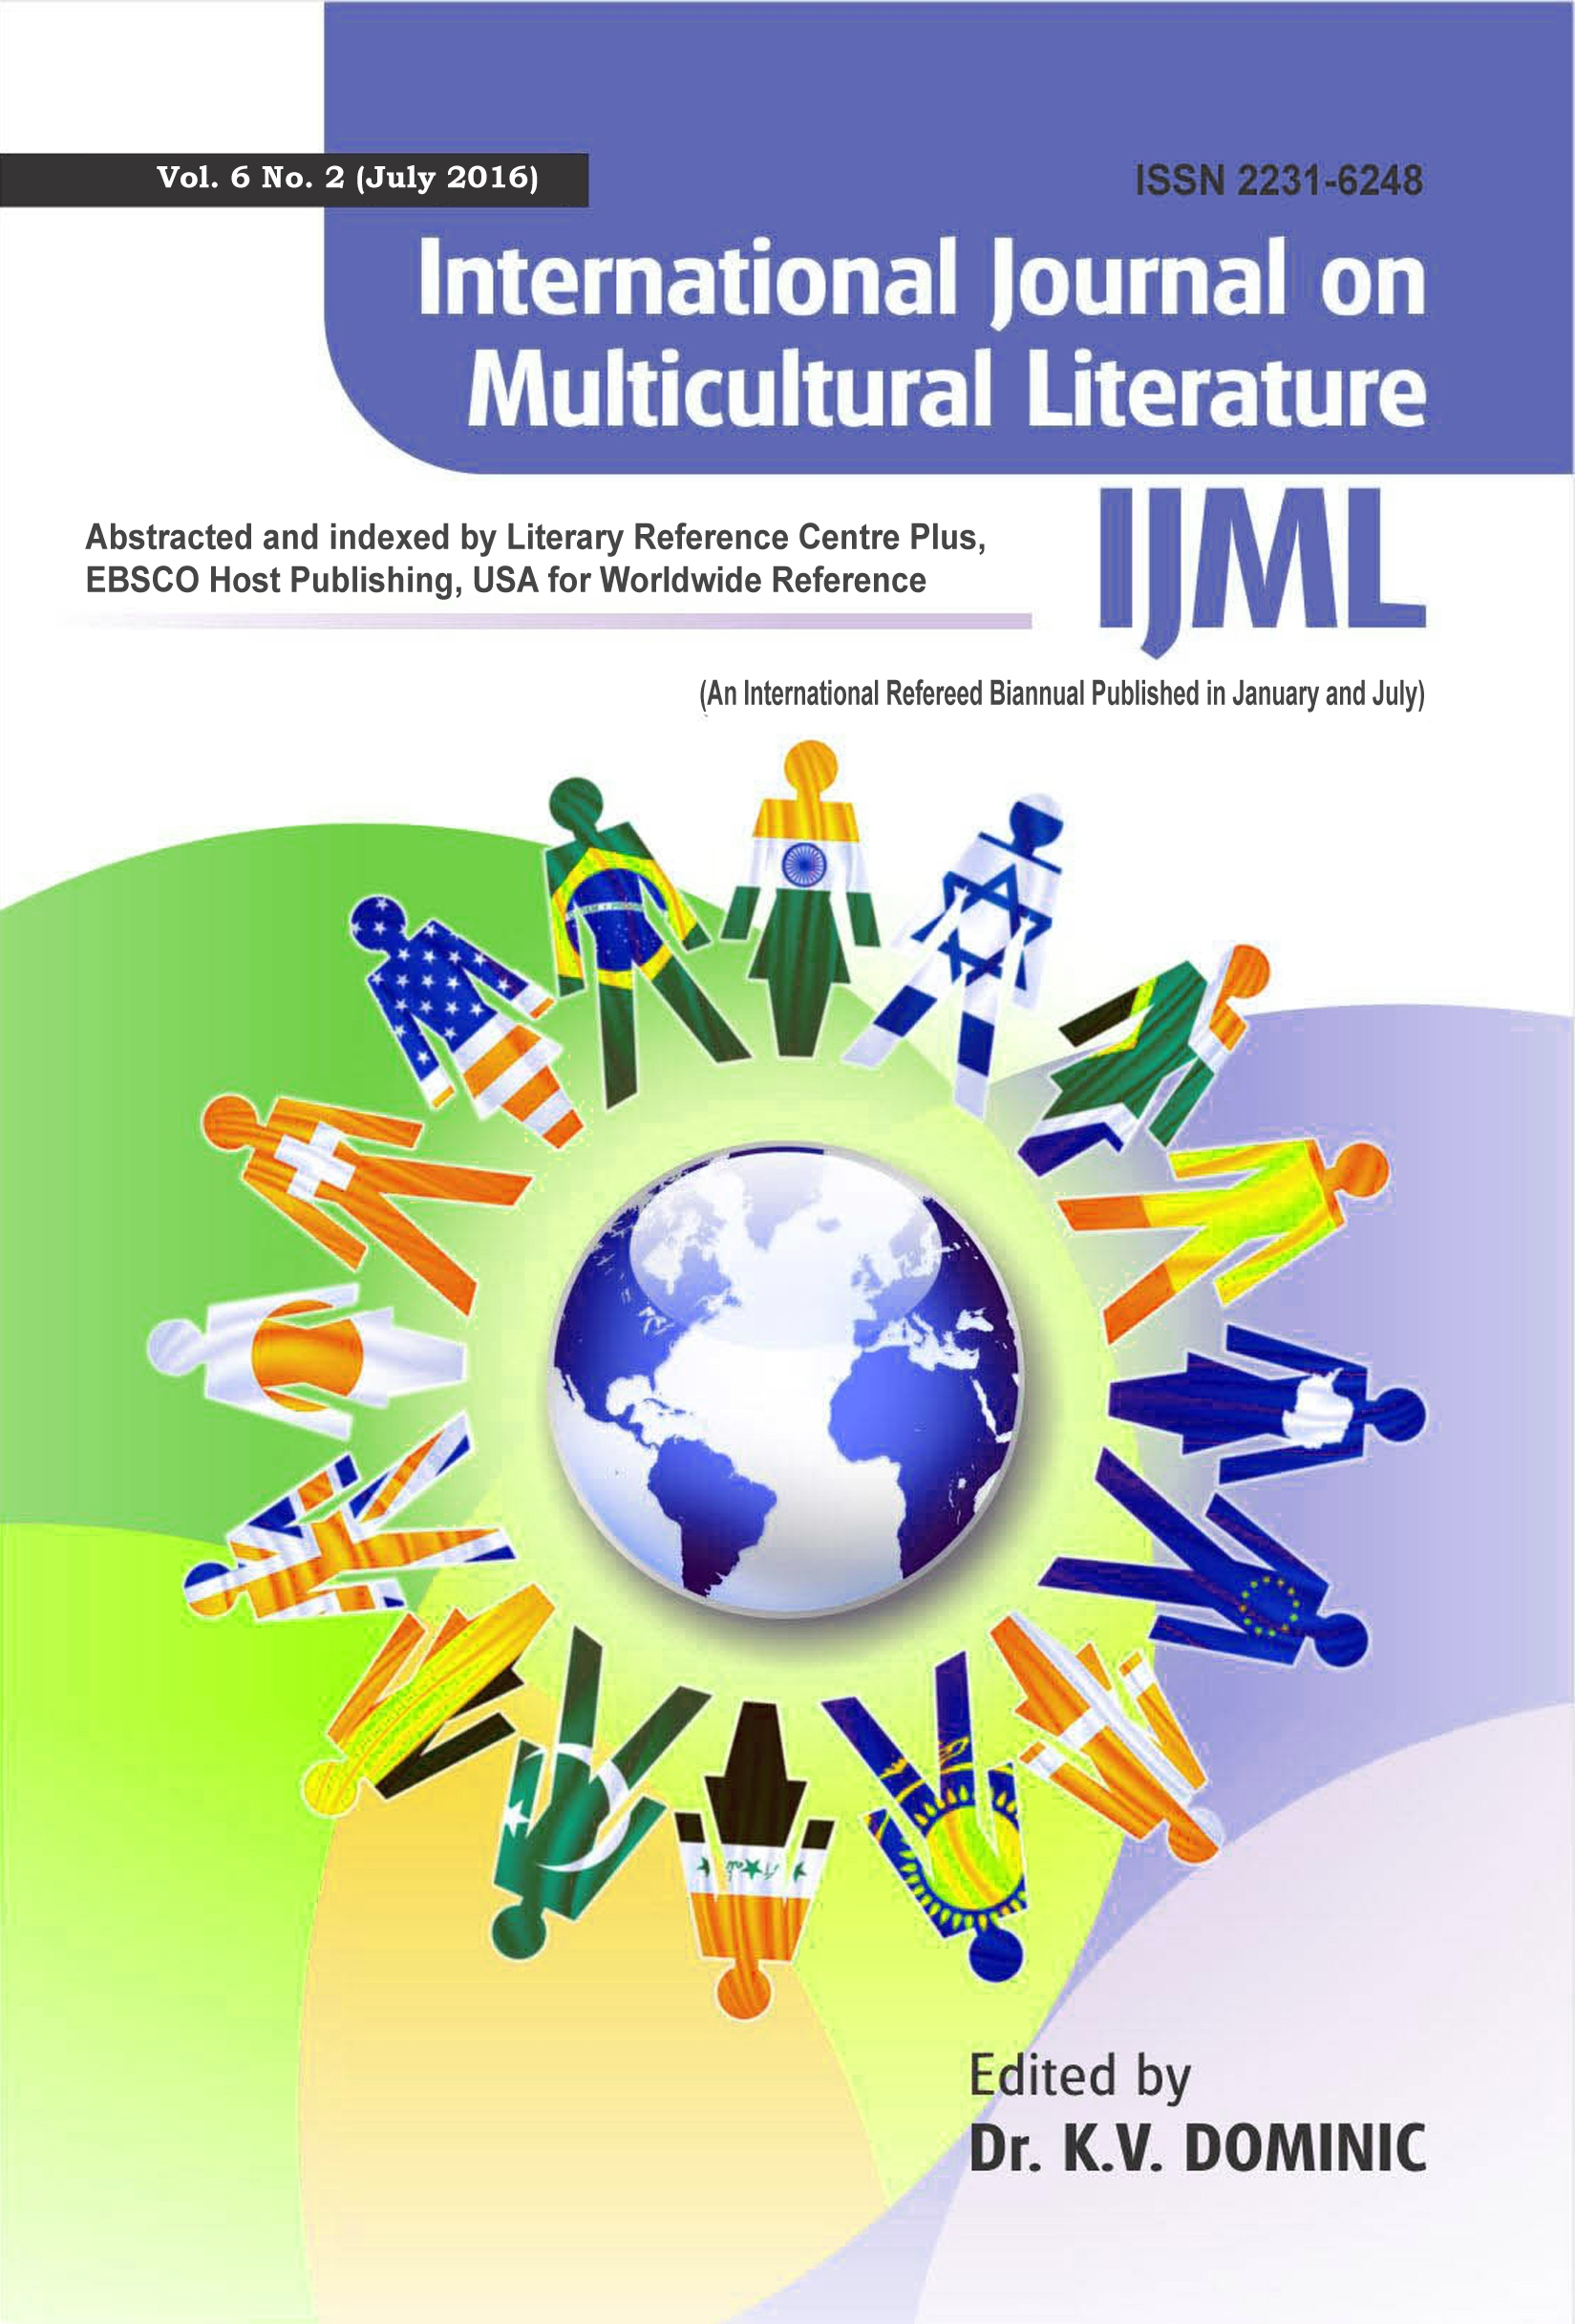 International Journal of Multicultural Literature